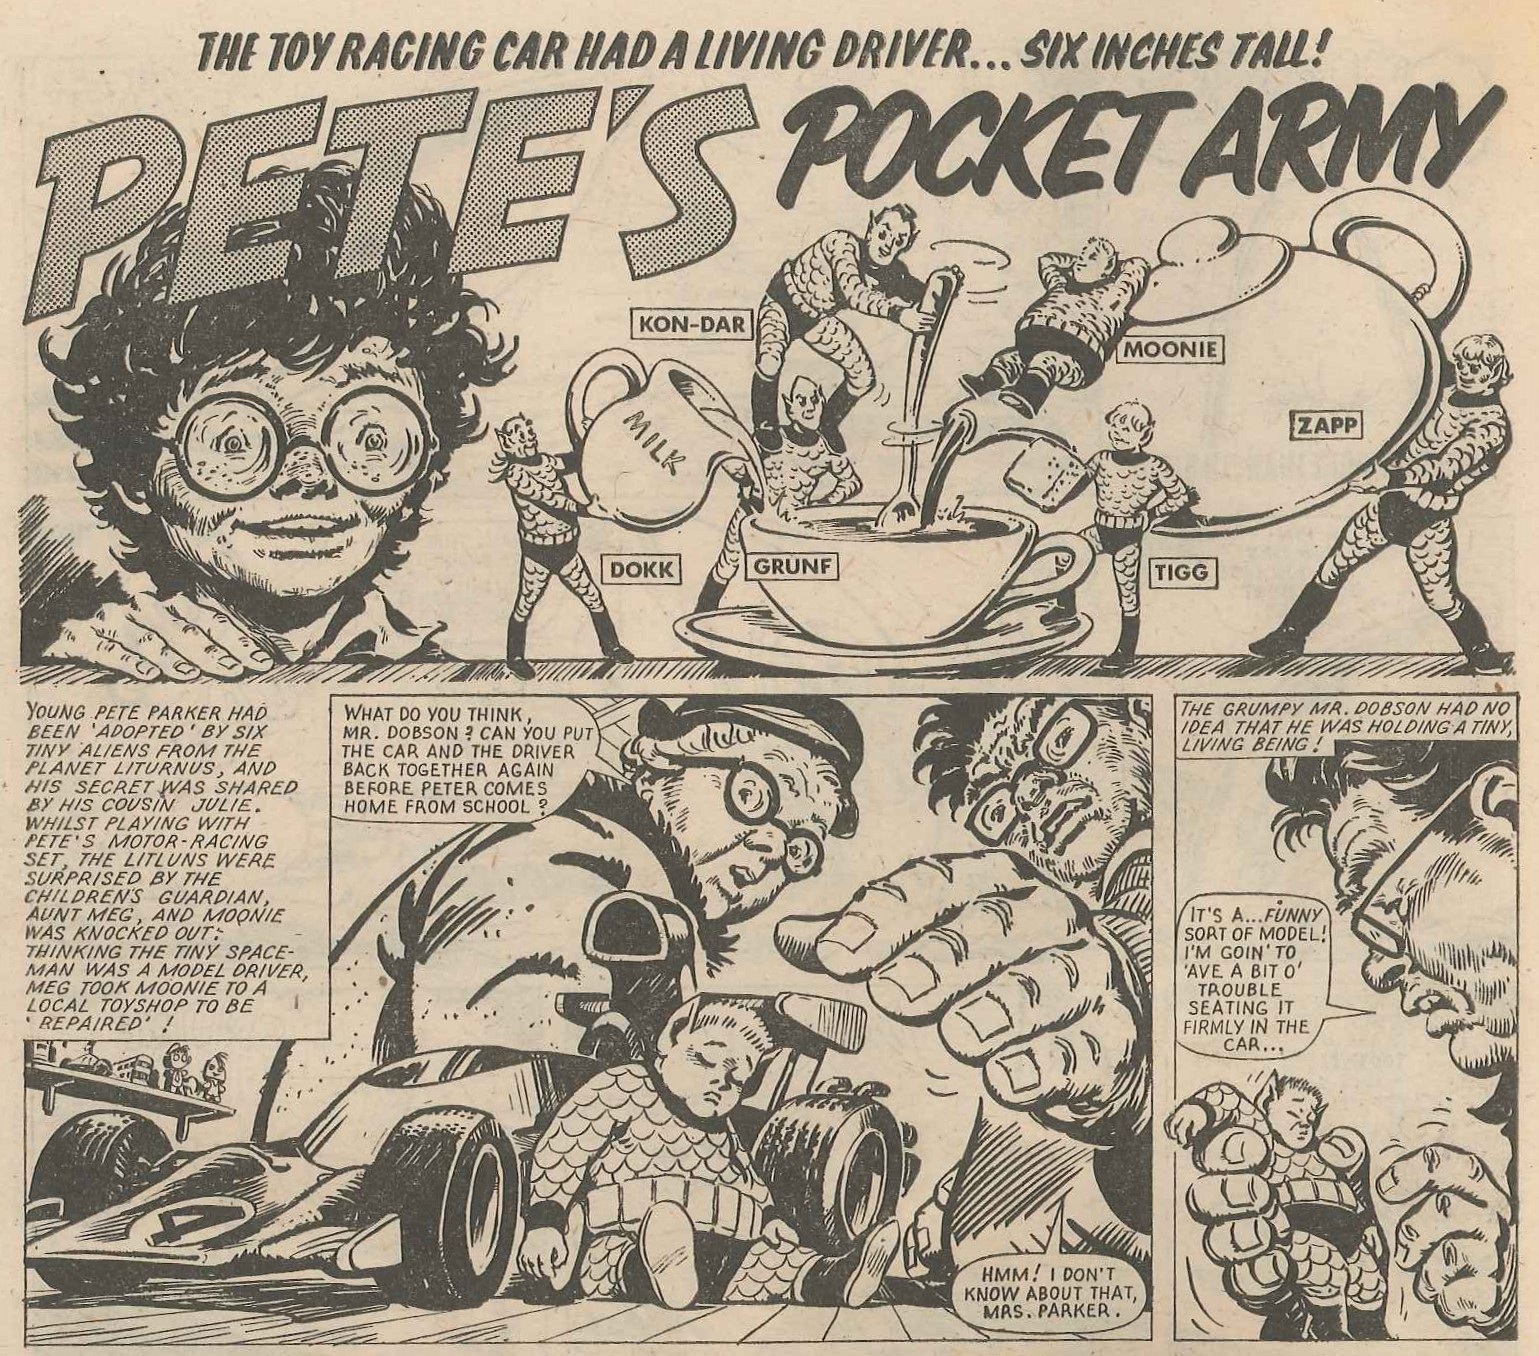 Pete's Pocket Army: Tom Tully (writer), Solano Lopez (artist)